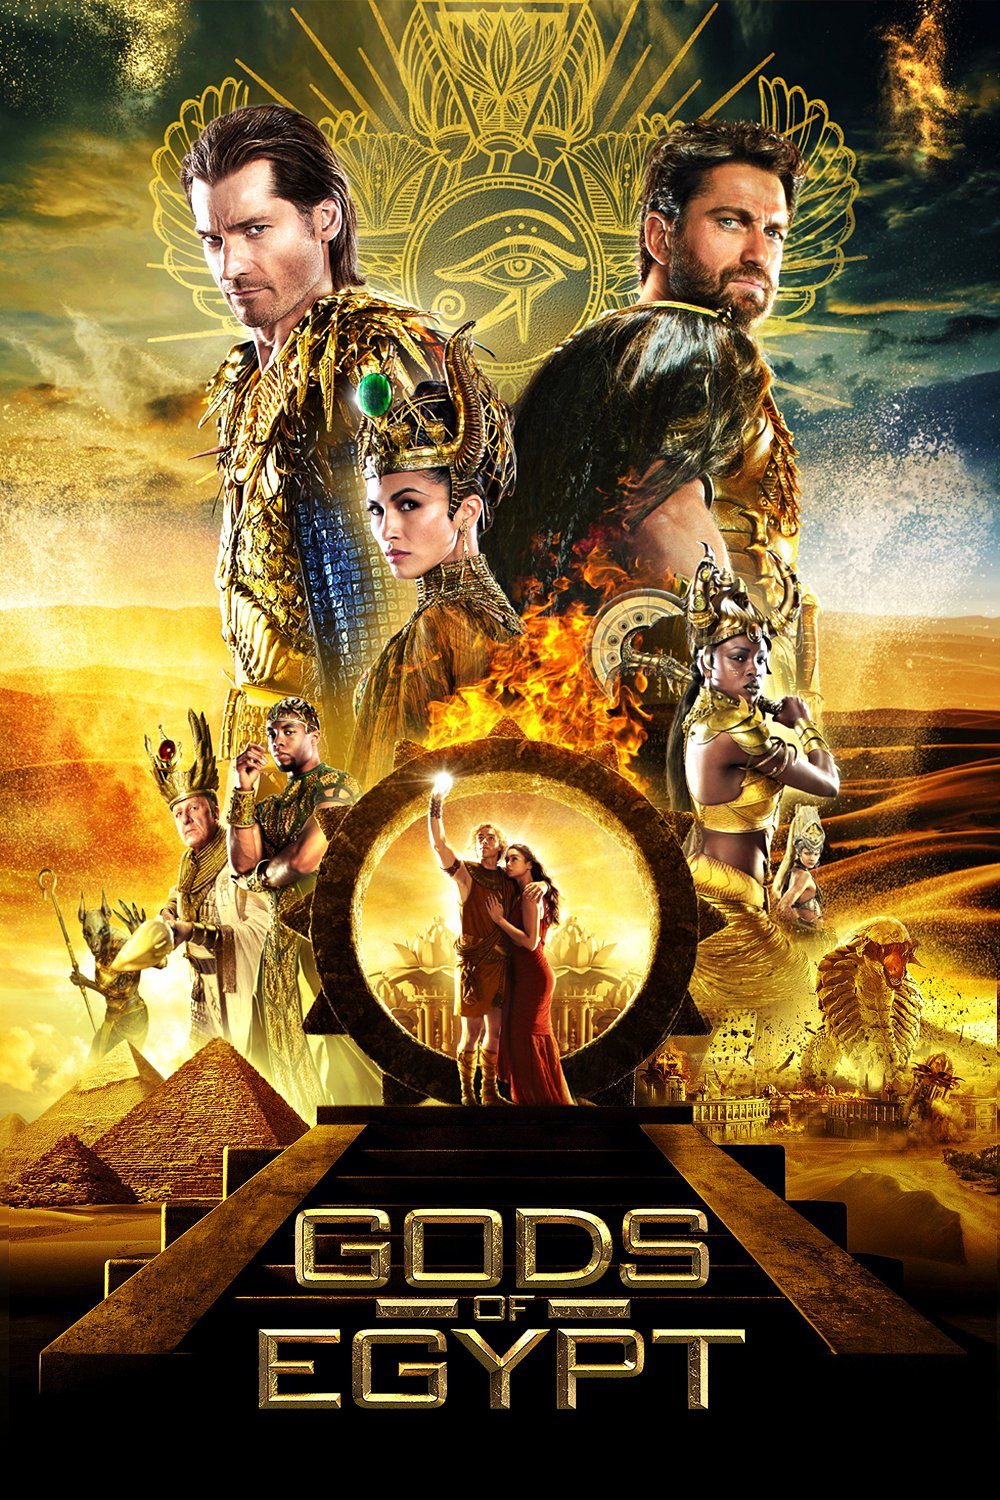 GODS OF EGYPT (2016) TAMIL DUBBED HD